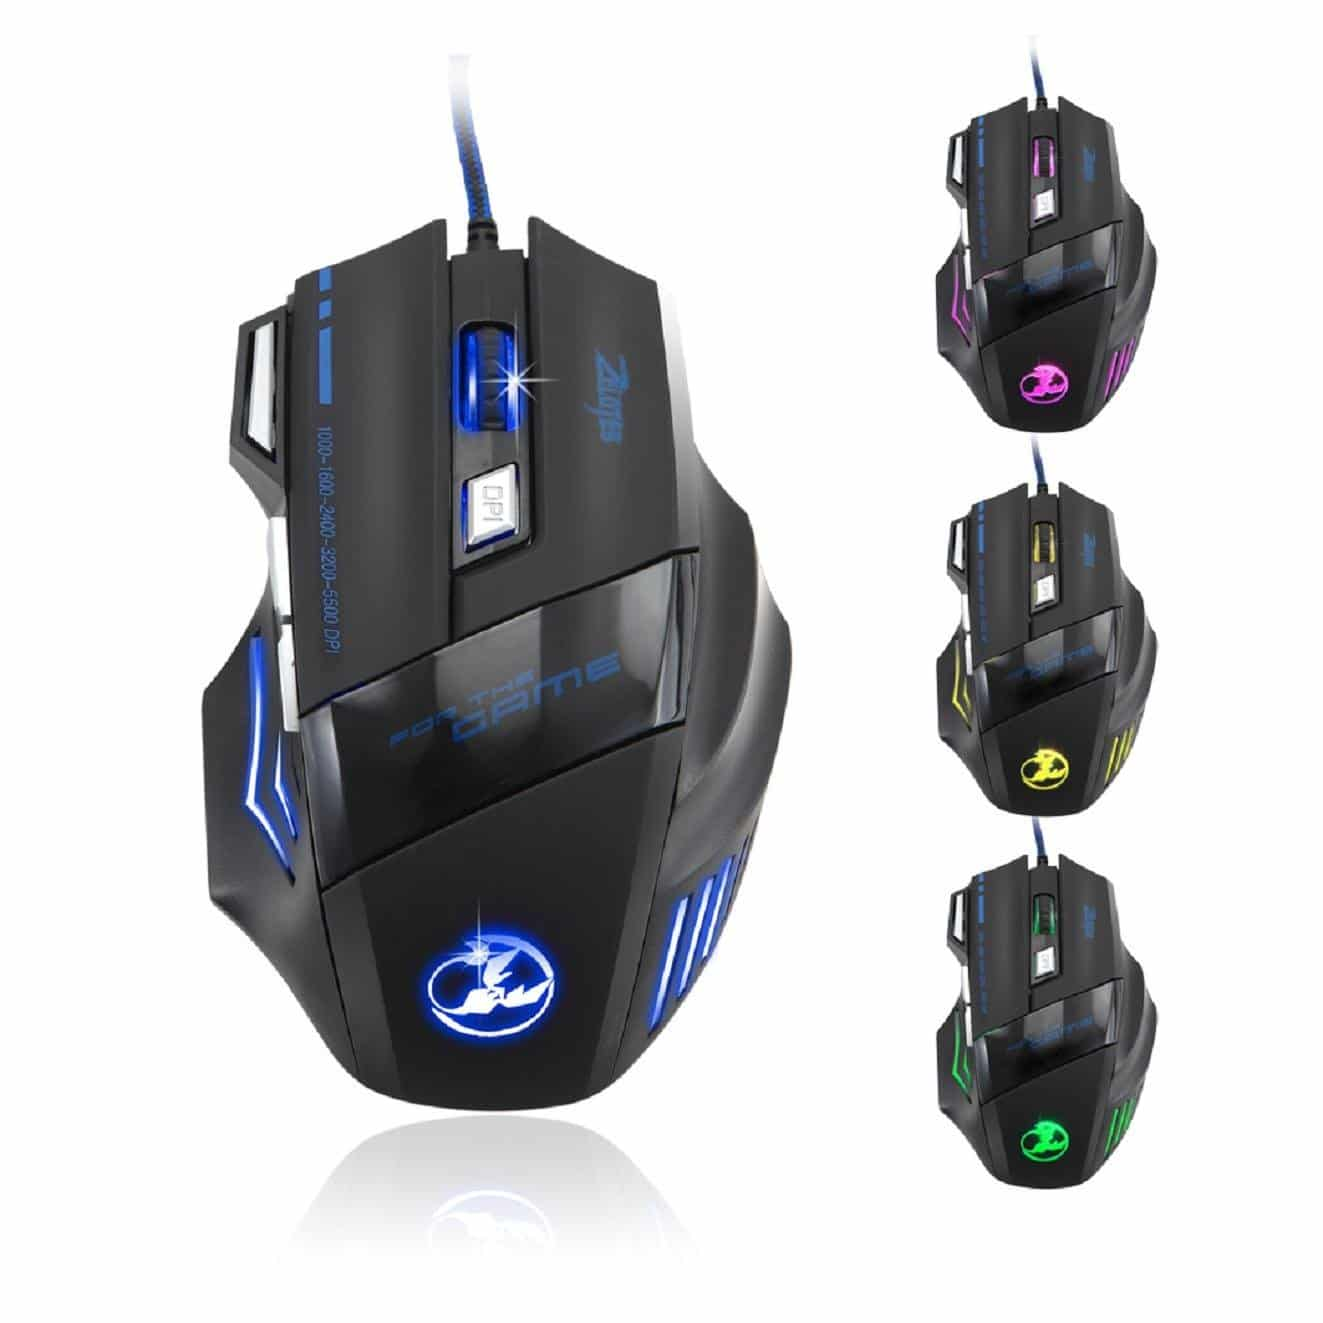 8e97065d8bd Top 10 Best Gaming Mouse Under 20$ 2018 Review - A Best Pro